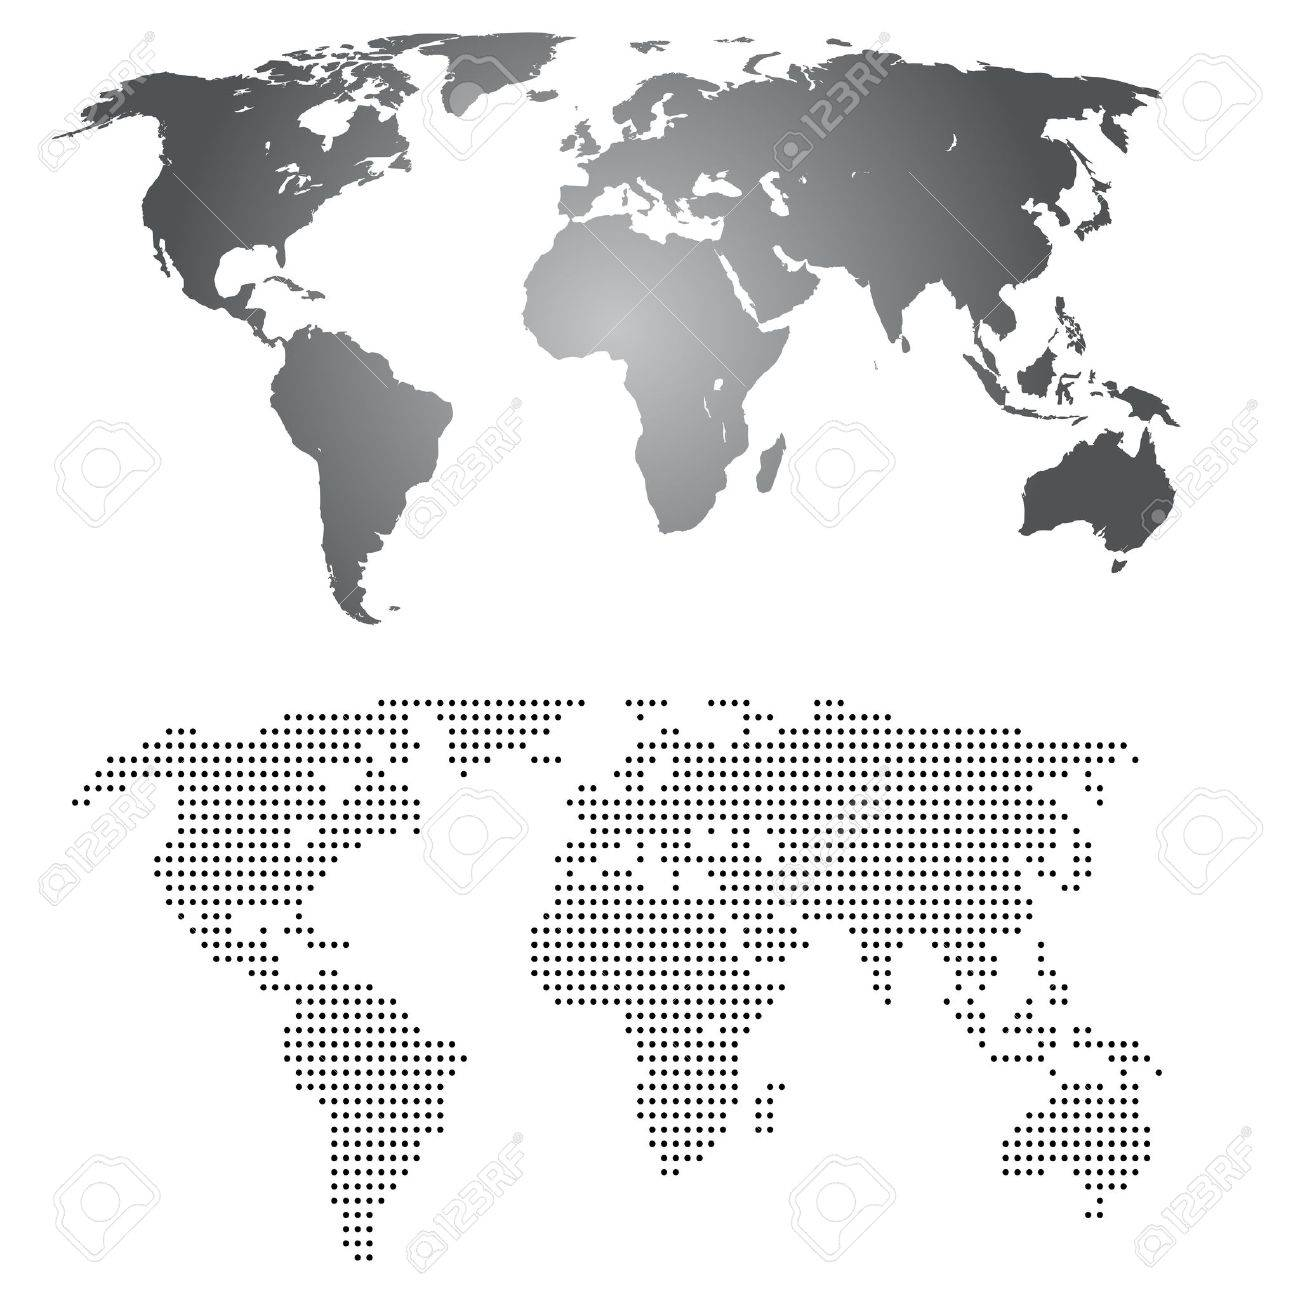 World maps grey gradient and made from dotts royalty free cliparts vector world maps grey gradient and made from dotts gumiabroncs Gallery